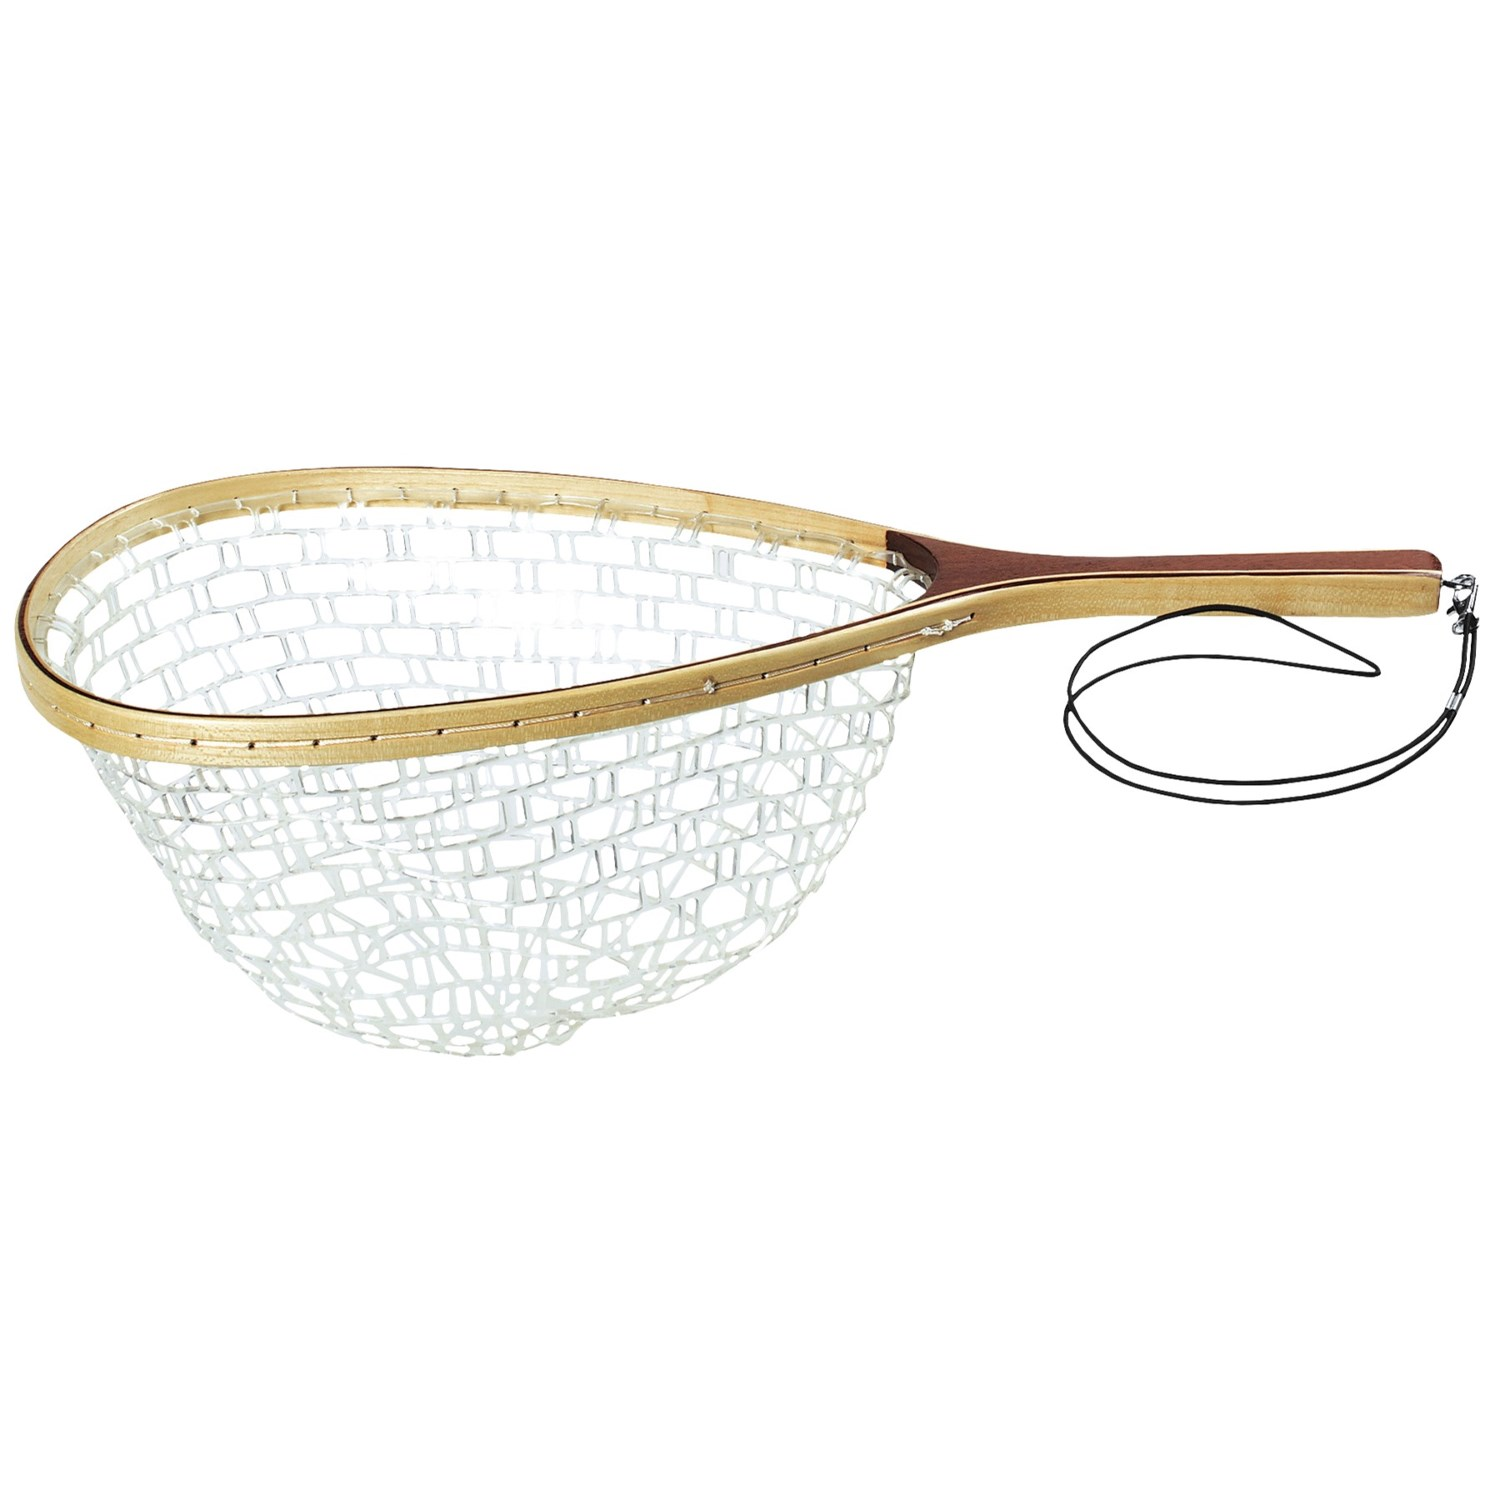 Wetfly rubber net with wooden handle small save 50 for Small fishing net